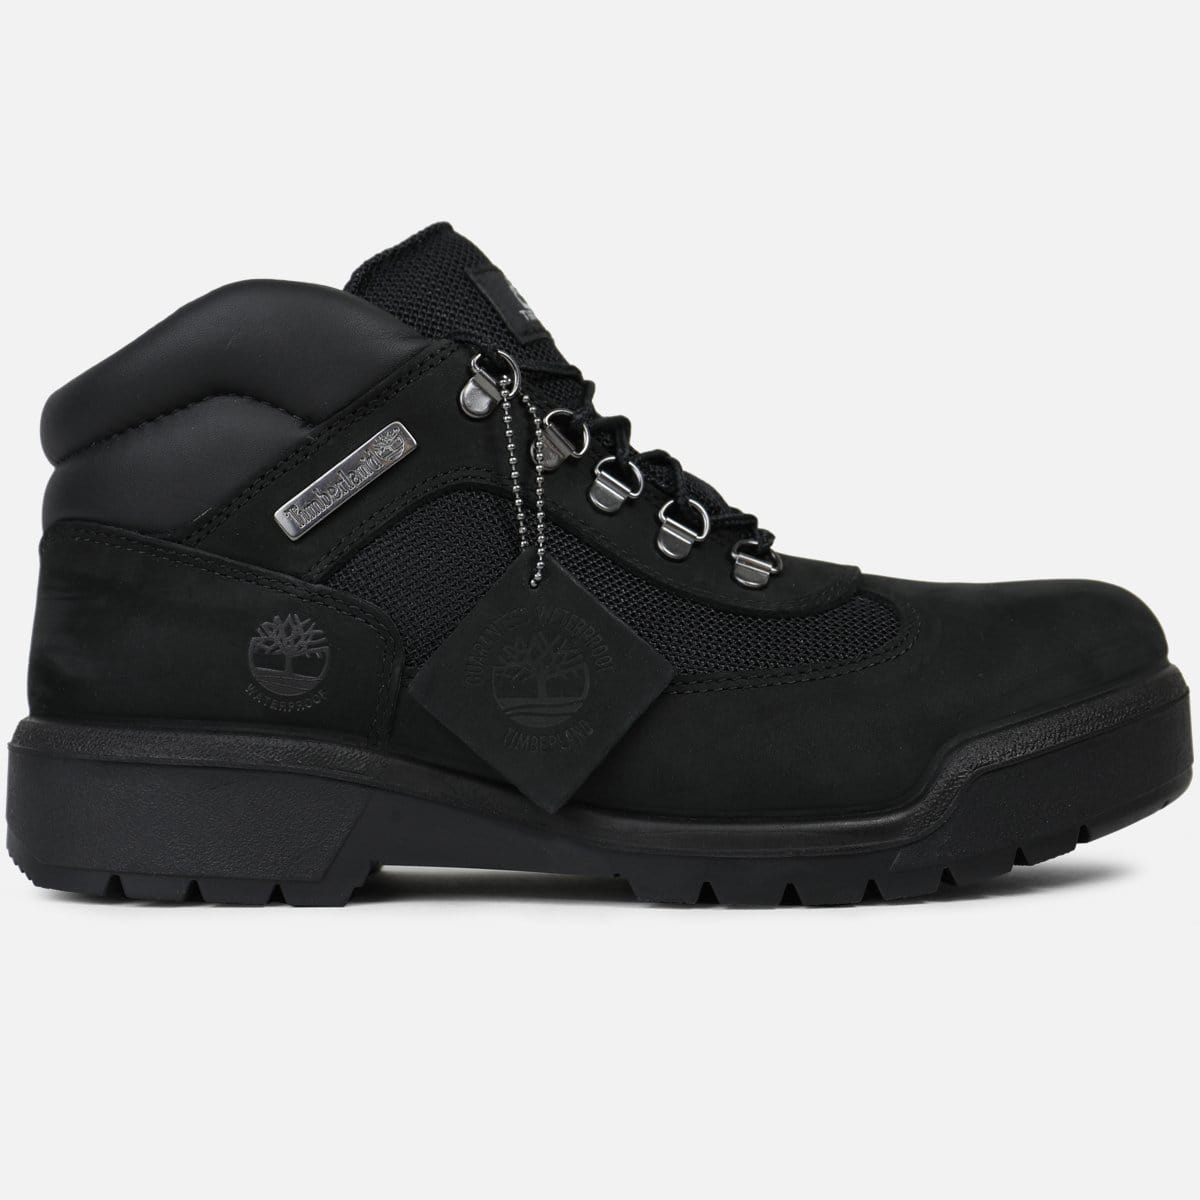 Timberland Waterproof Field Boot (Black)